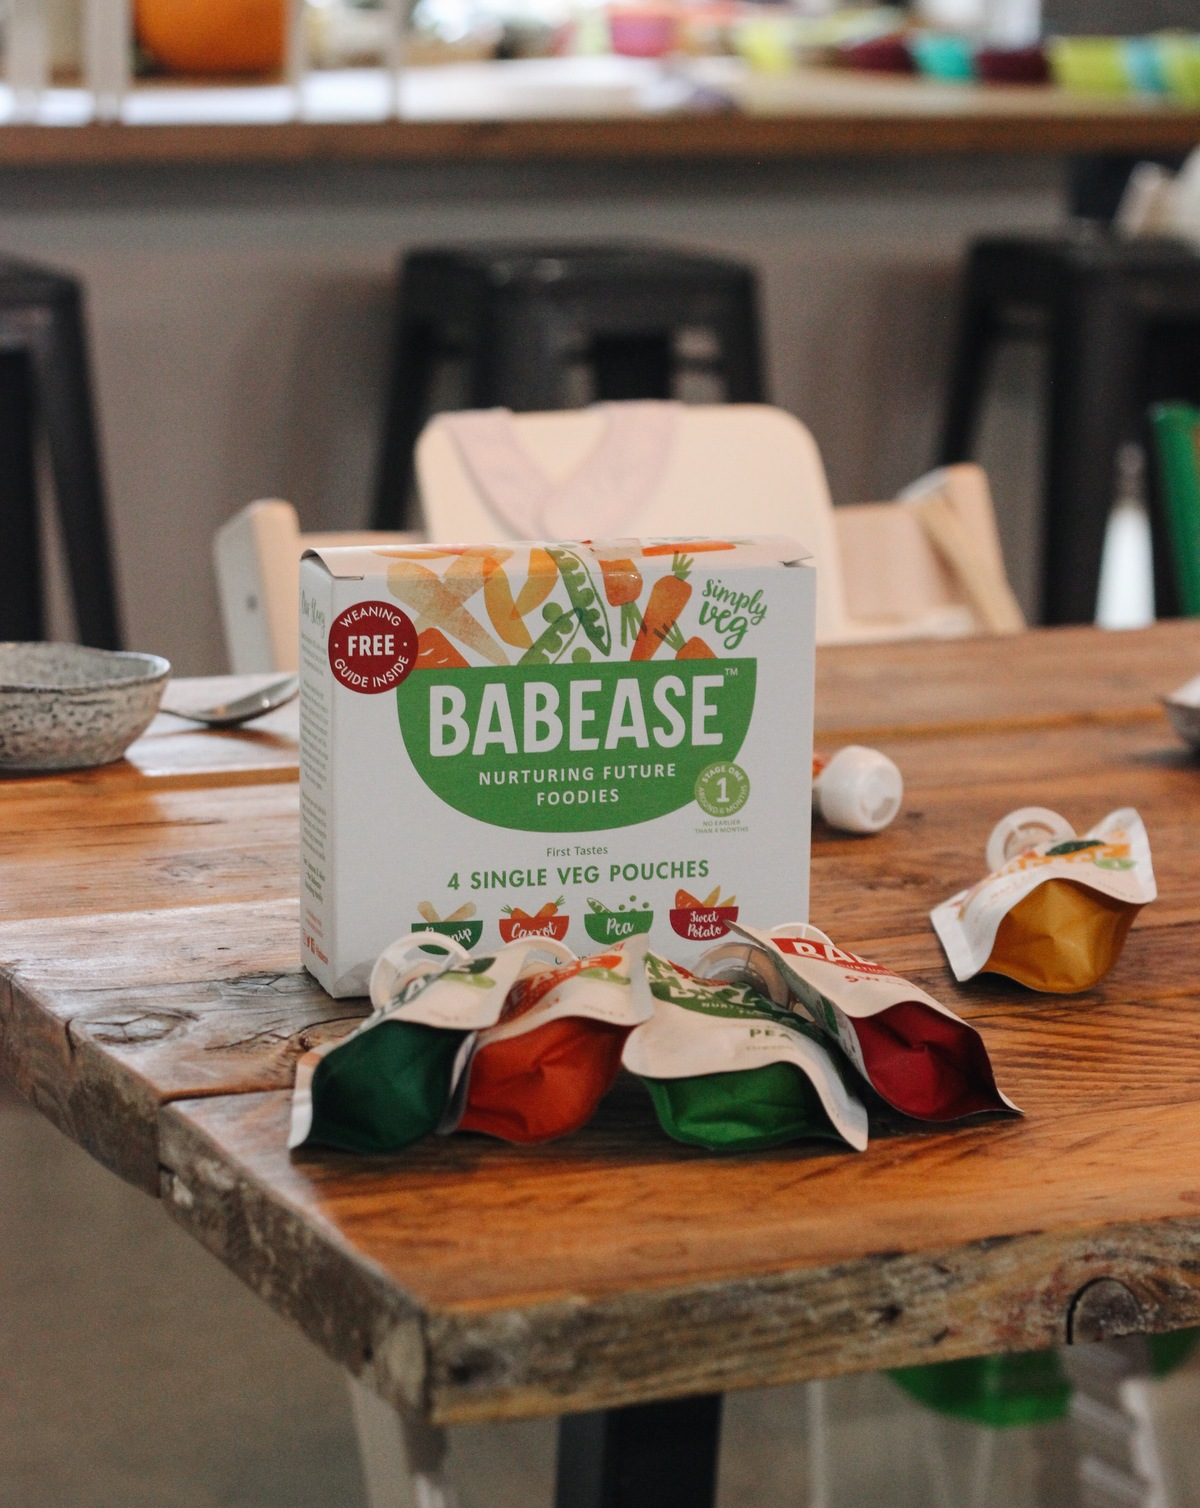 Babease weaning products